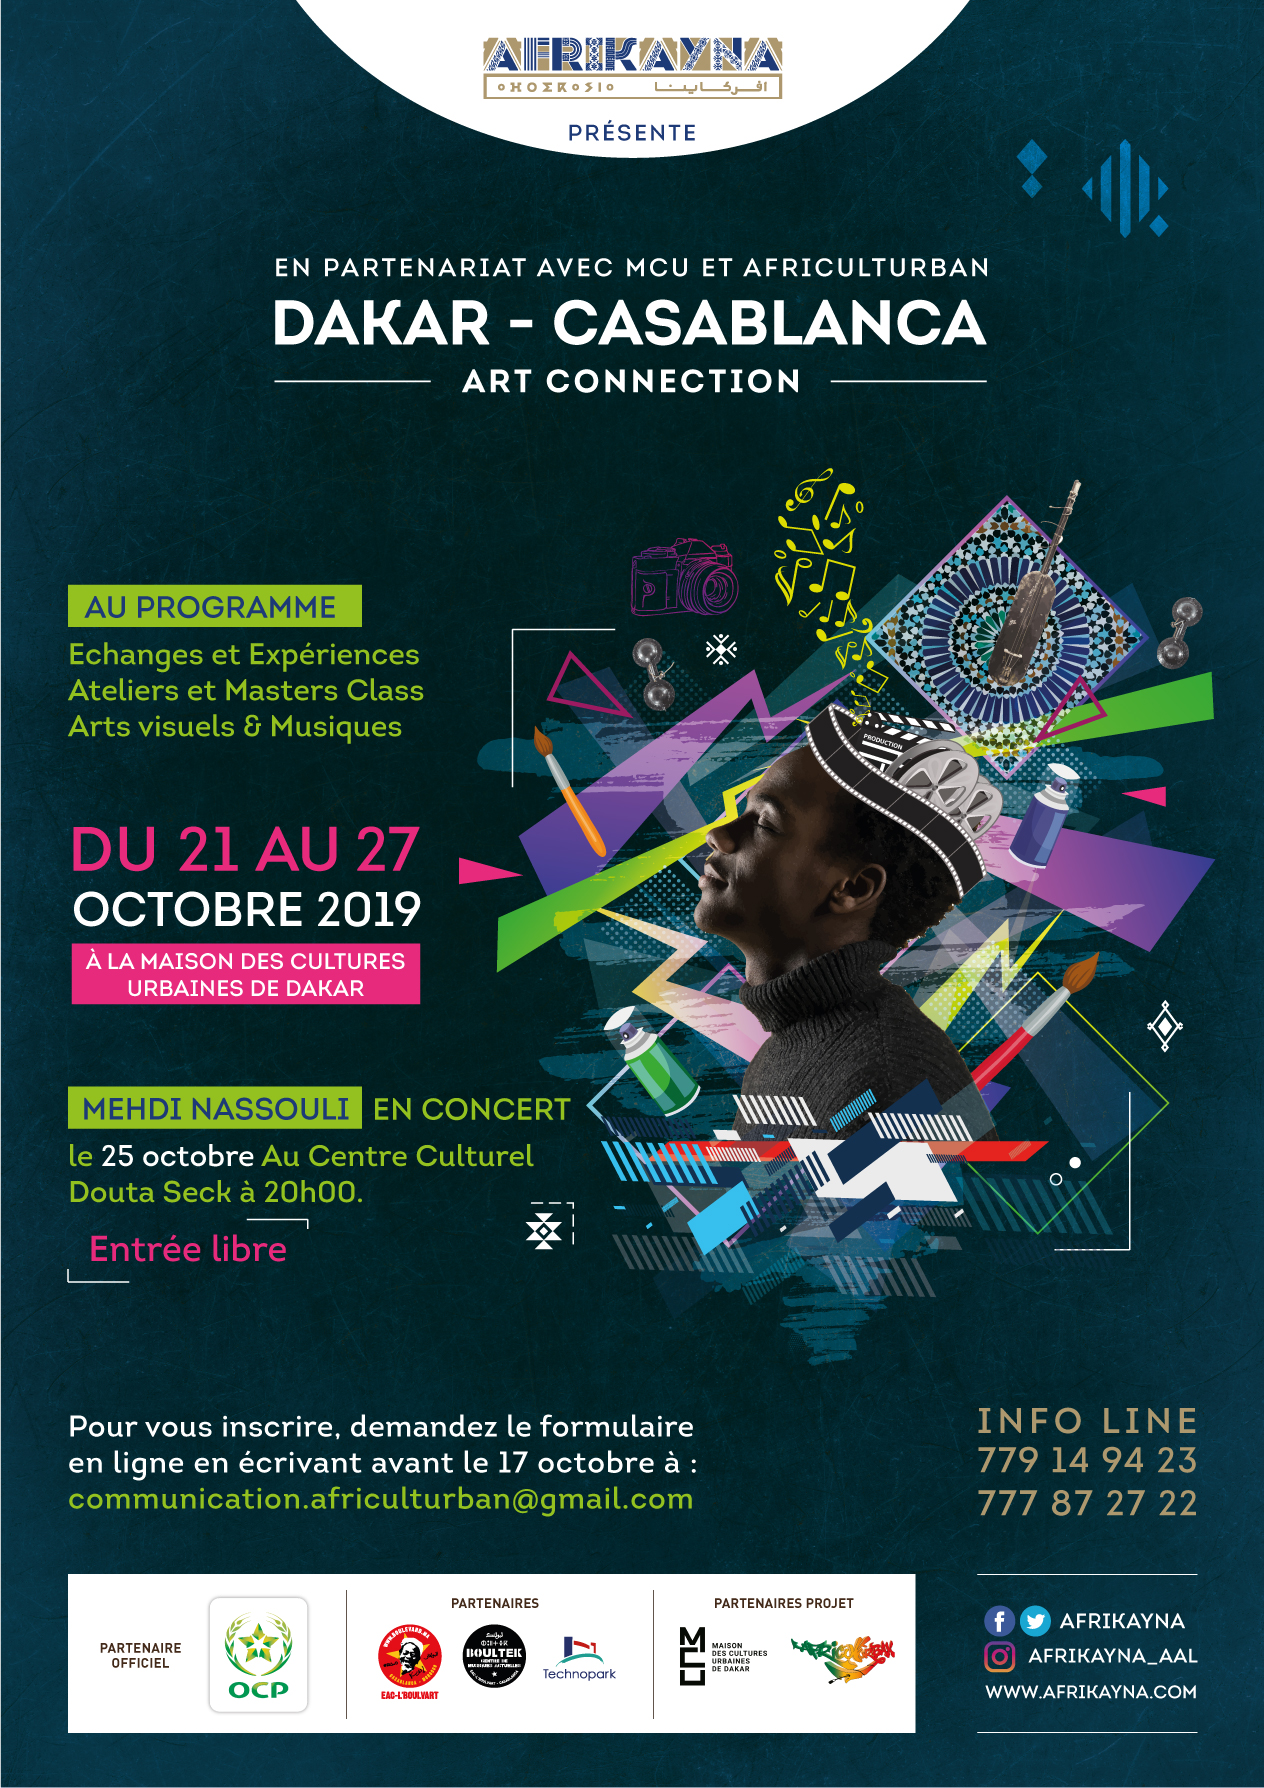 Dakar – Casablanca Art Connection